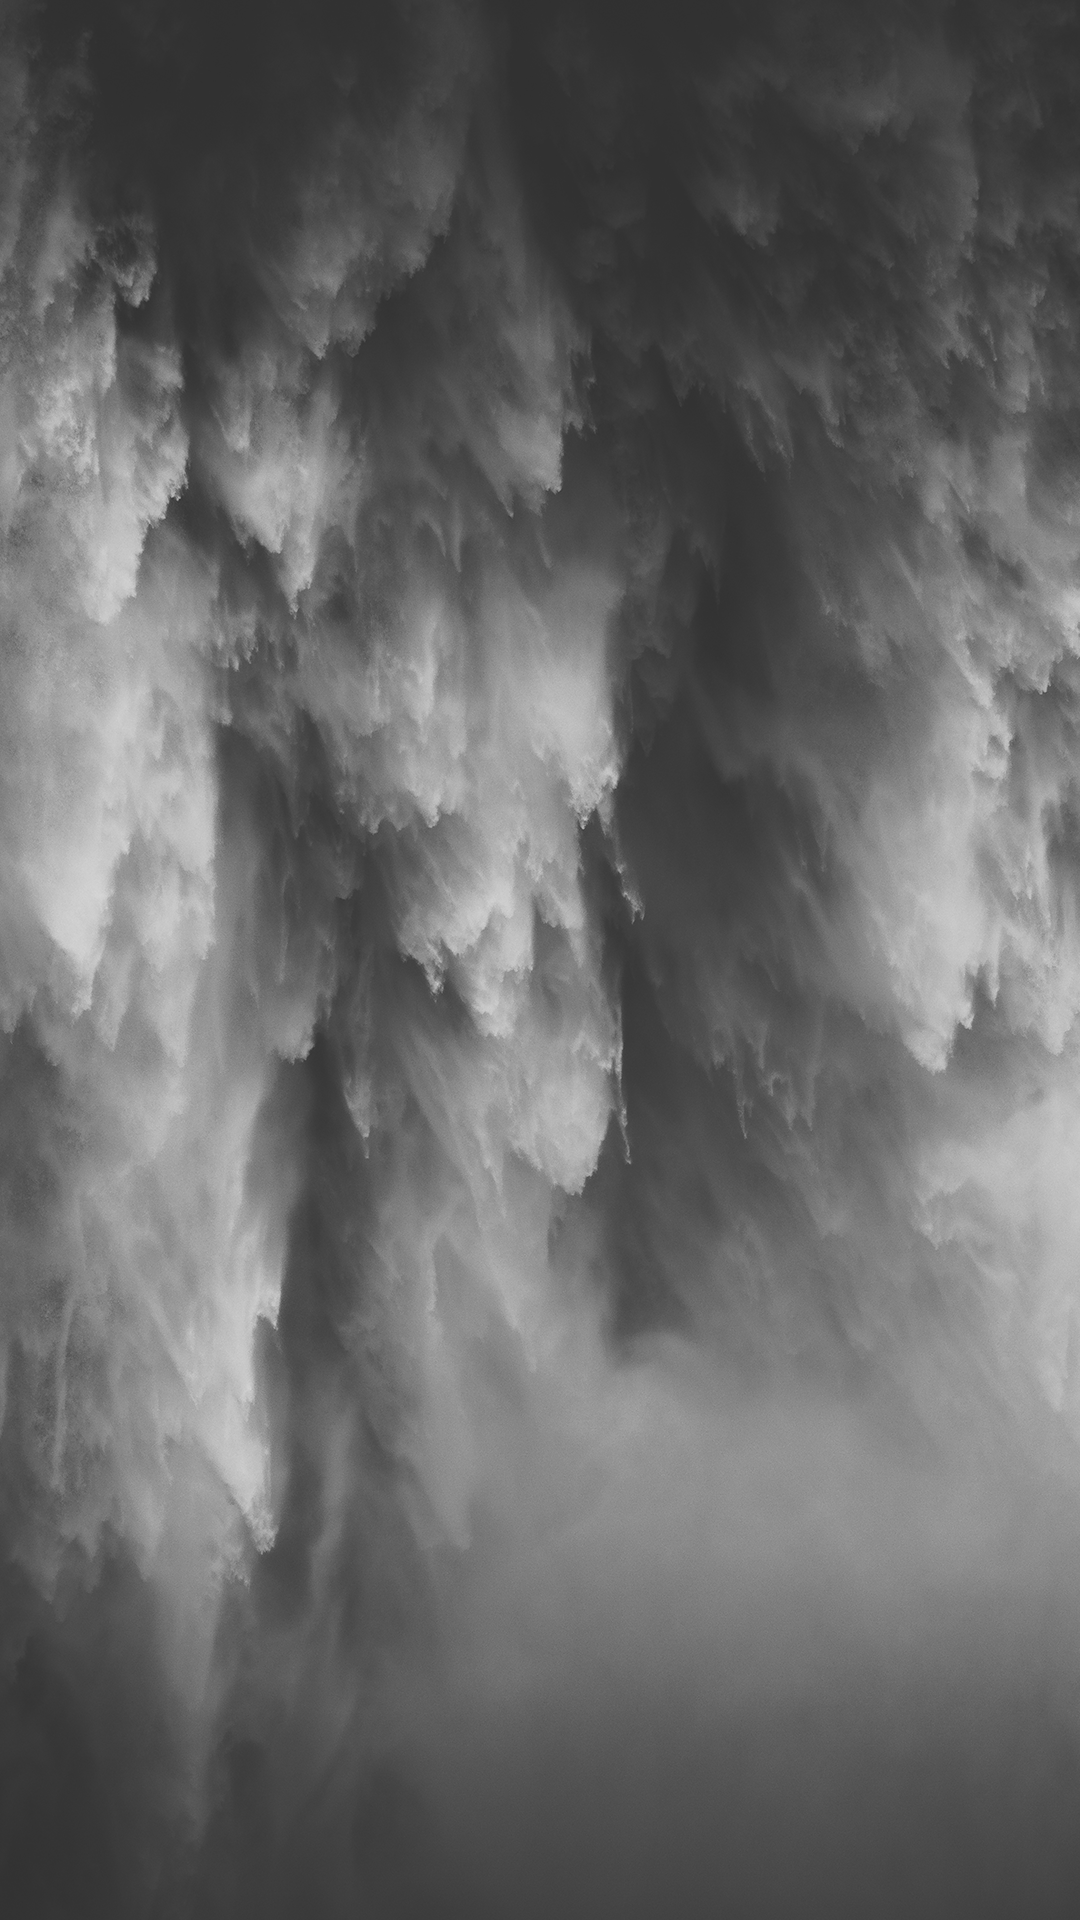 Download Our Hd Waterfall Black Wallpaper For Android Phones